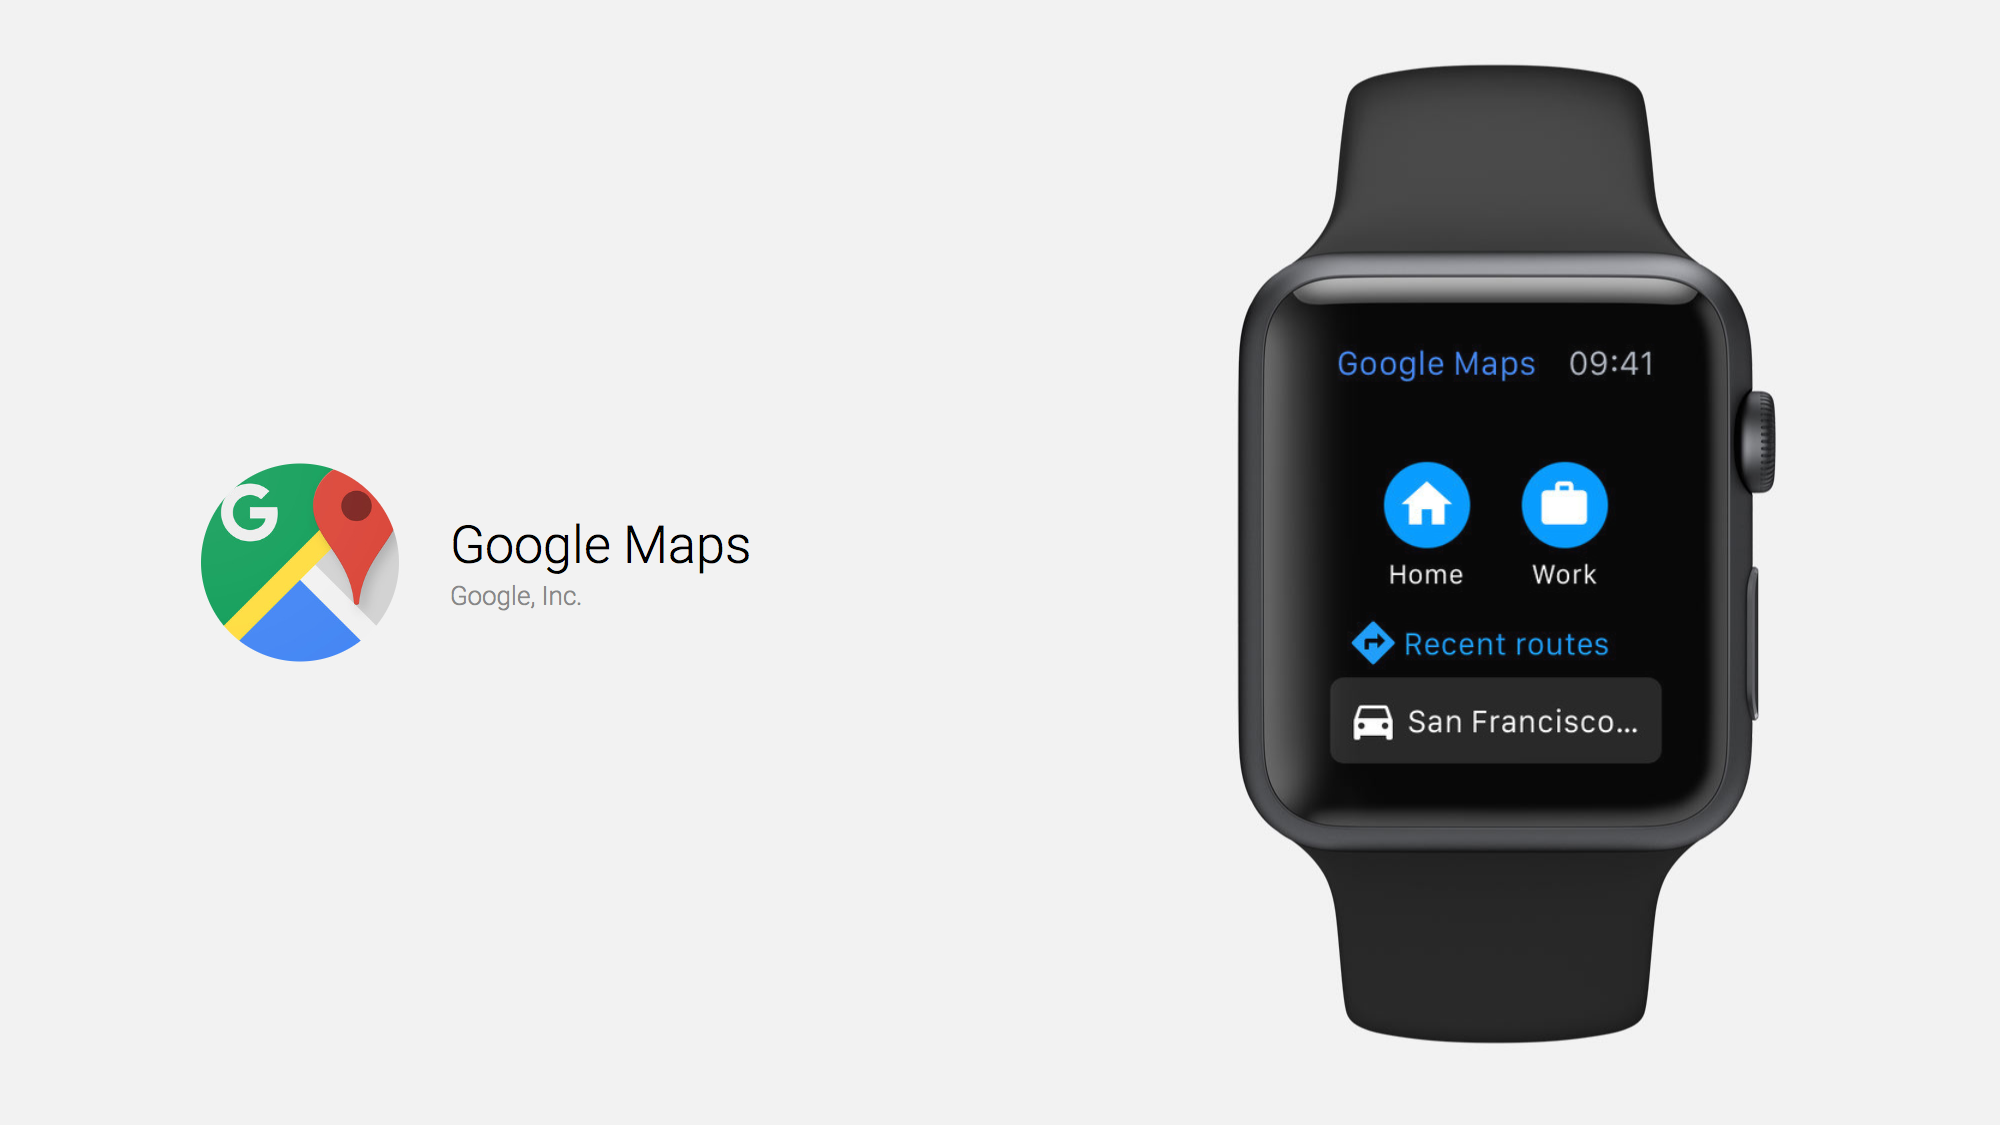 Google Maps for iOS Updated with Support for Apple Watch